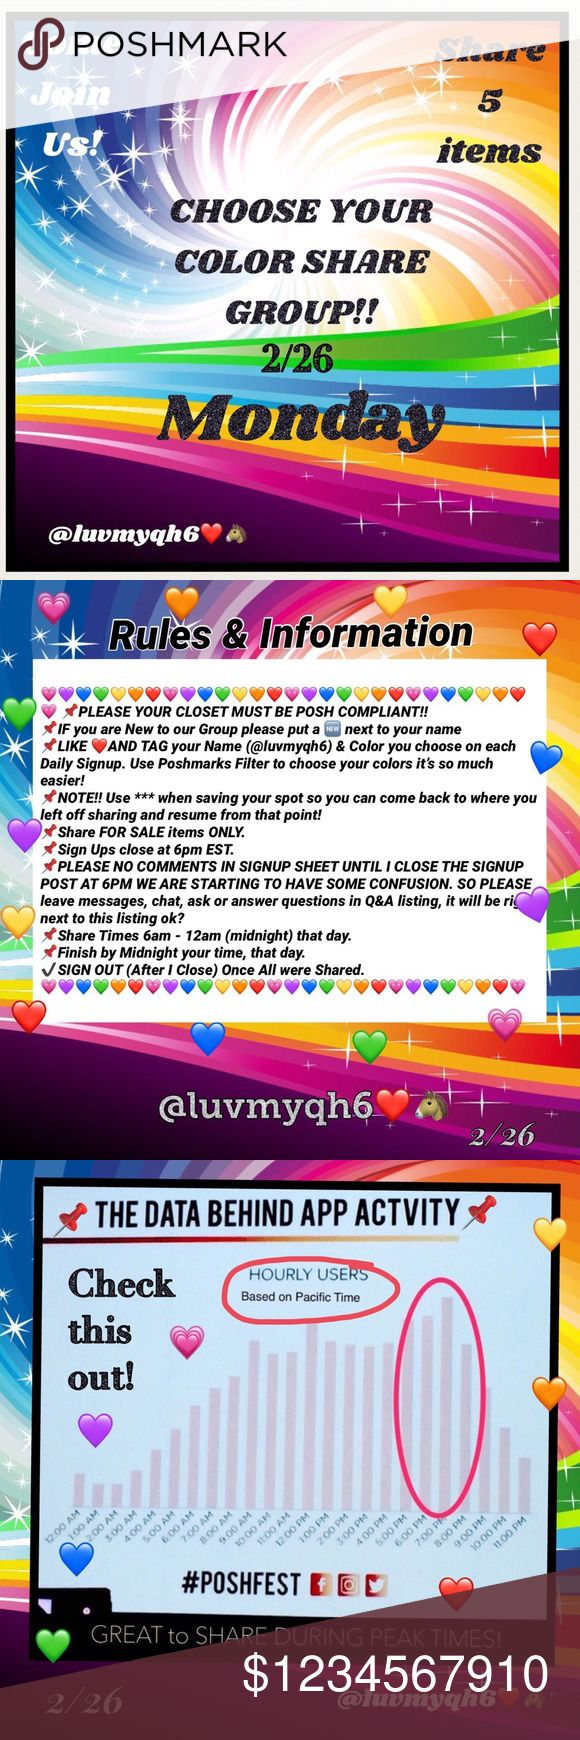 💗Monday's CSG Signup CLOSED!💜 ❤️❤️❤️❤️❤️❤️❤️❤️❤️❤️❤️❤️❤️❤️❤️ 💚Please read our second picture,🧡it has all our Instructions and Rules for💙Our Great Color Share Group!💜But if there are any questions or concerns please 💛tag me @luvmyqh6 in the CSG Q&A Listing OK? Thank you ladies for making this a more fun filled Color Share Group, So lets go have another fun filled colorful sharing tomorrow! 💁🙋♀️ ❤️❤️❤️❤️❤️❤️❤️❤️❤️❤️❤️❤️❤️❤️❤️ Other